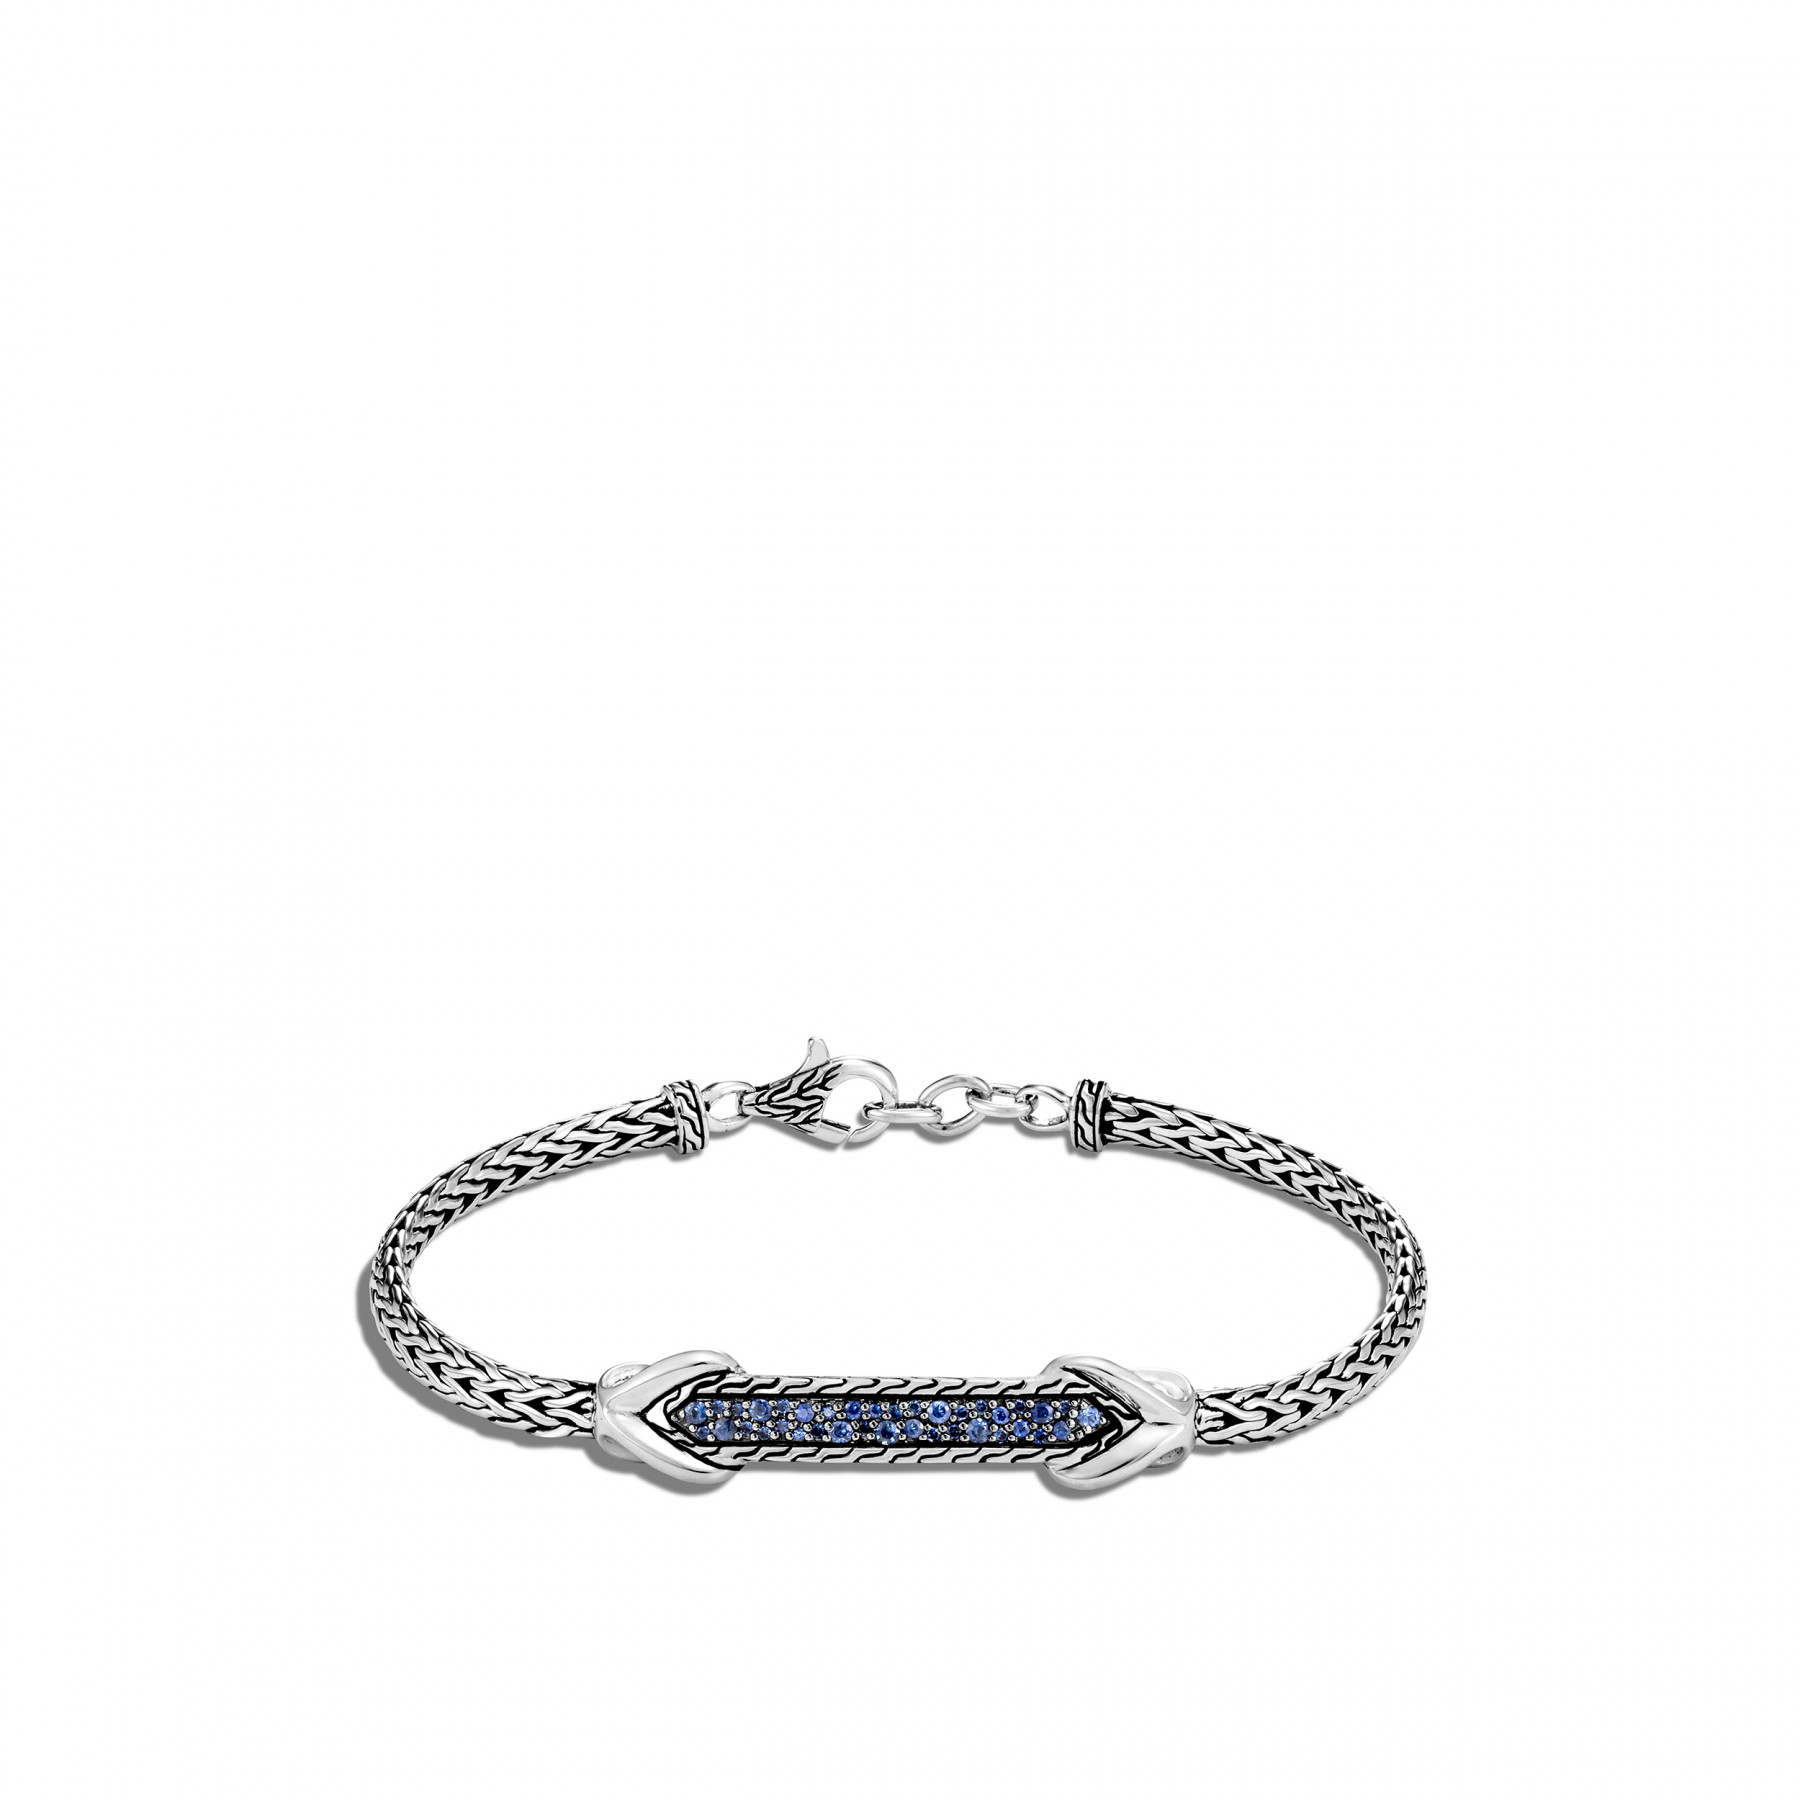 John Hardy  Sterling Silver  Blue Sapphire Silver Bracelet with Stones BBS905704BSPXM